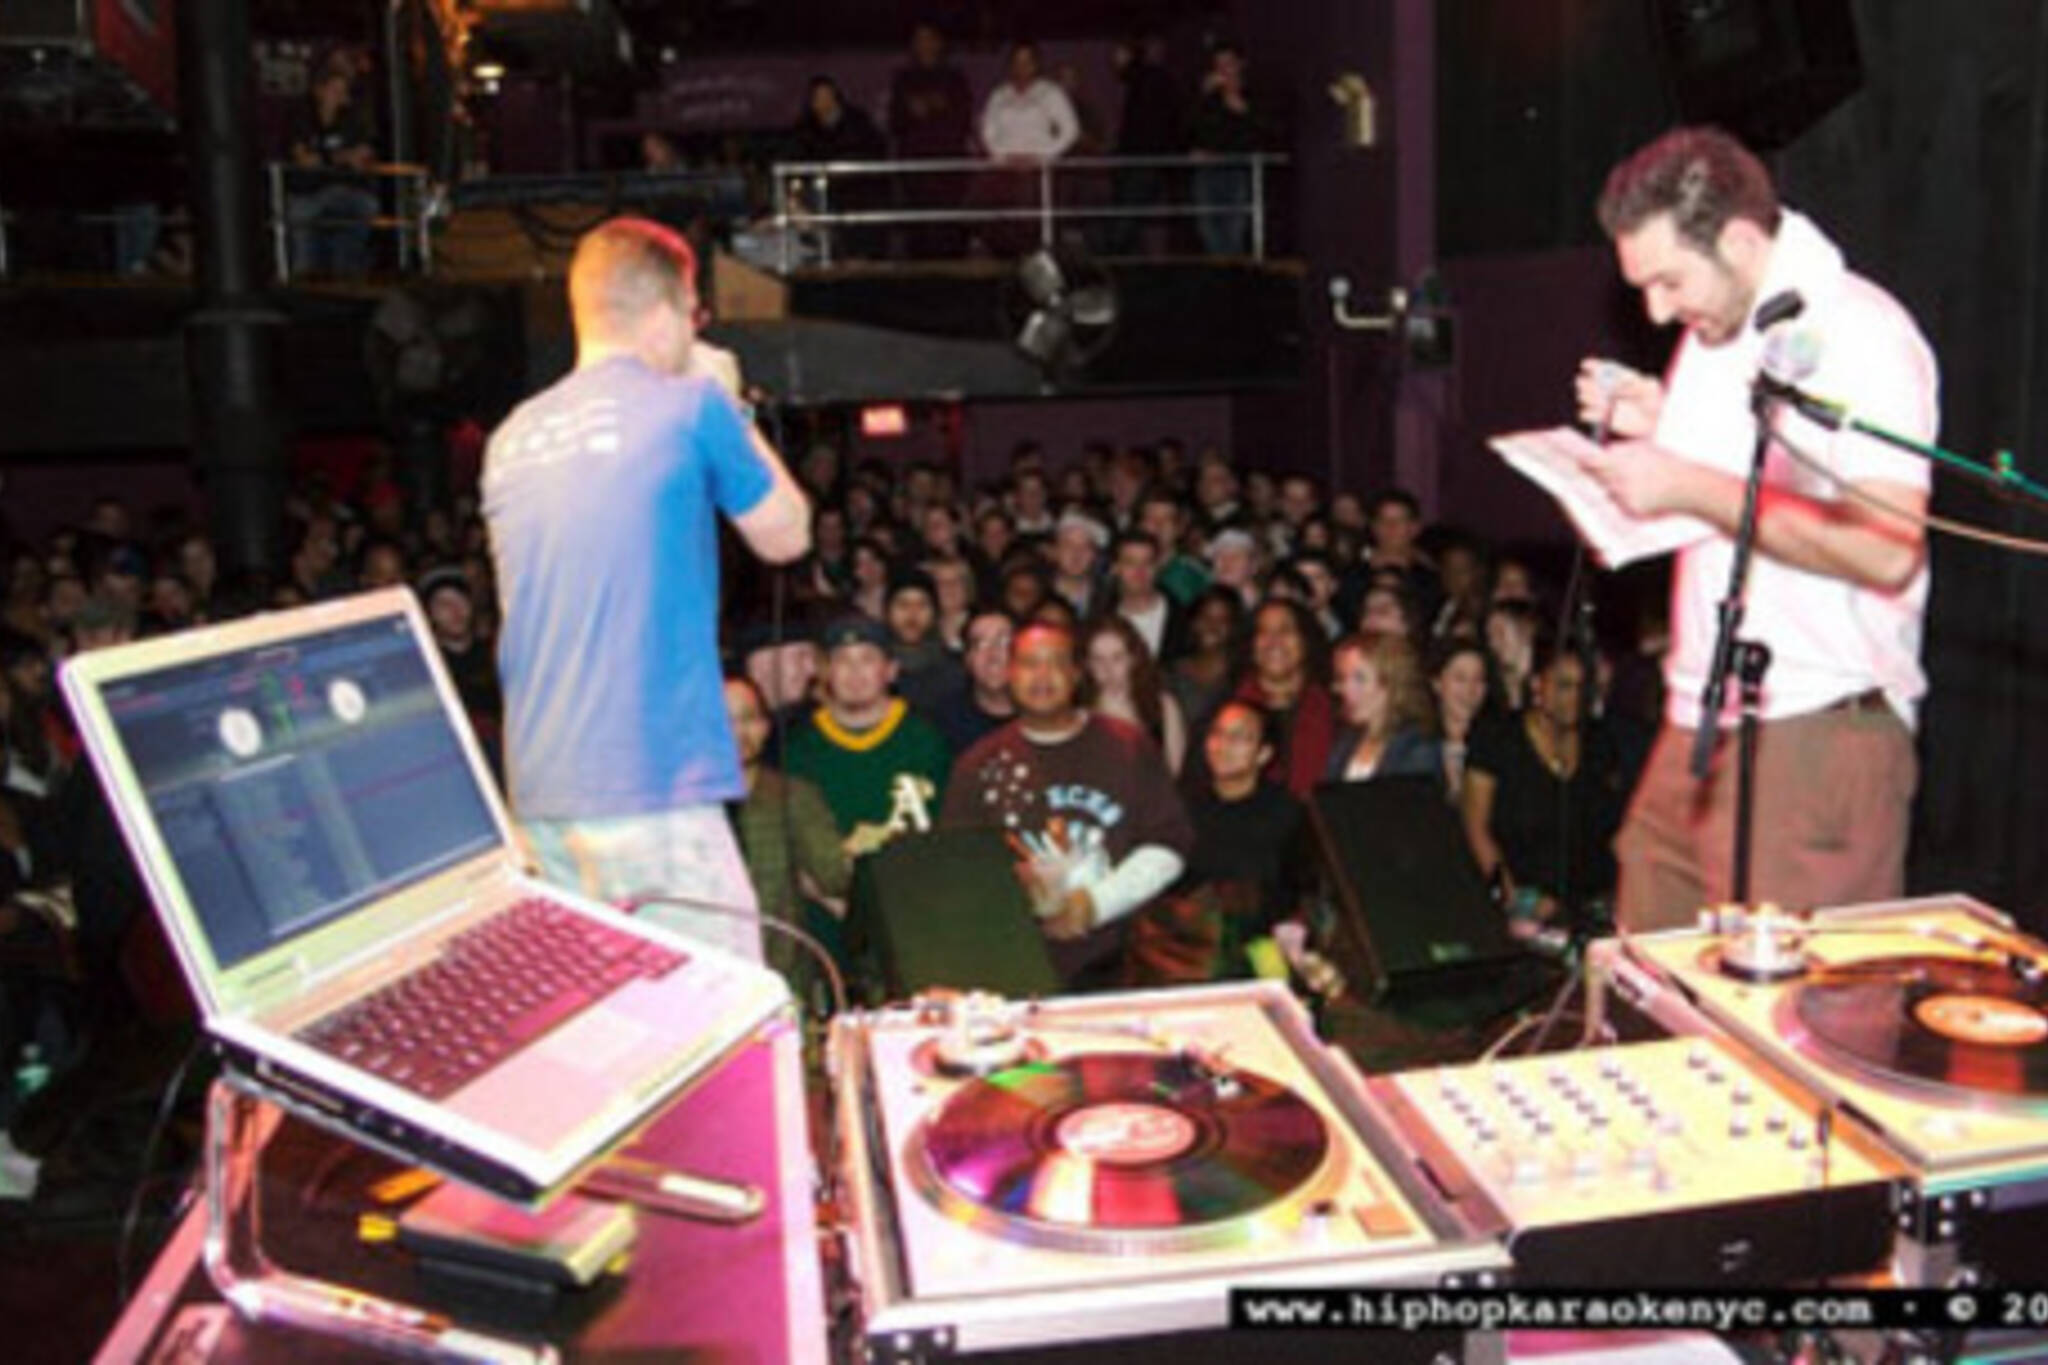 hiphopkaraoke_crowd.jpg